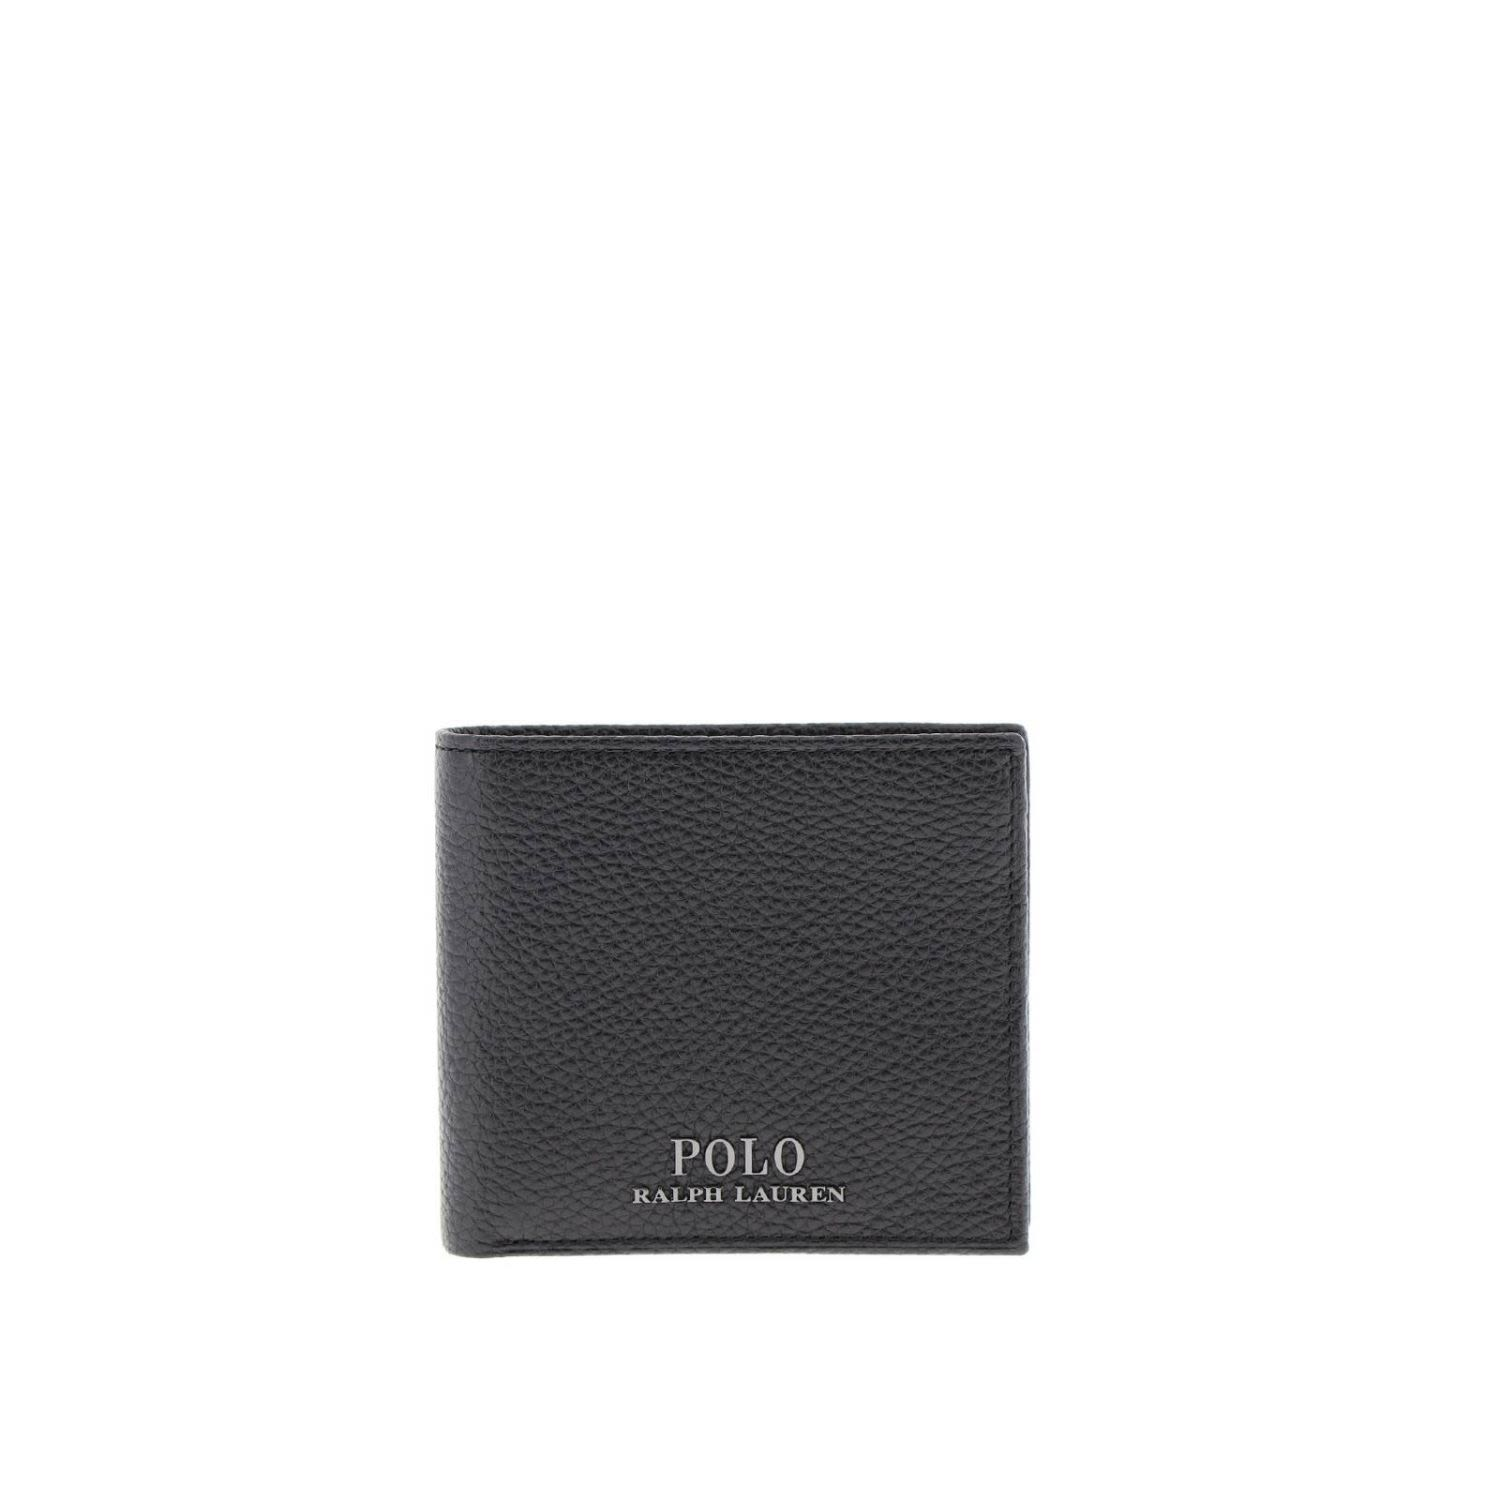 Polo Ralph Lauren Wallet Wallet Men Polo Ralph Lauren